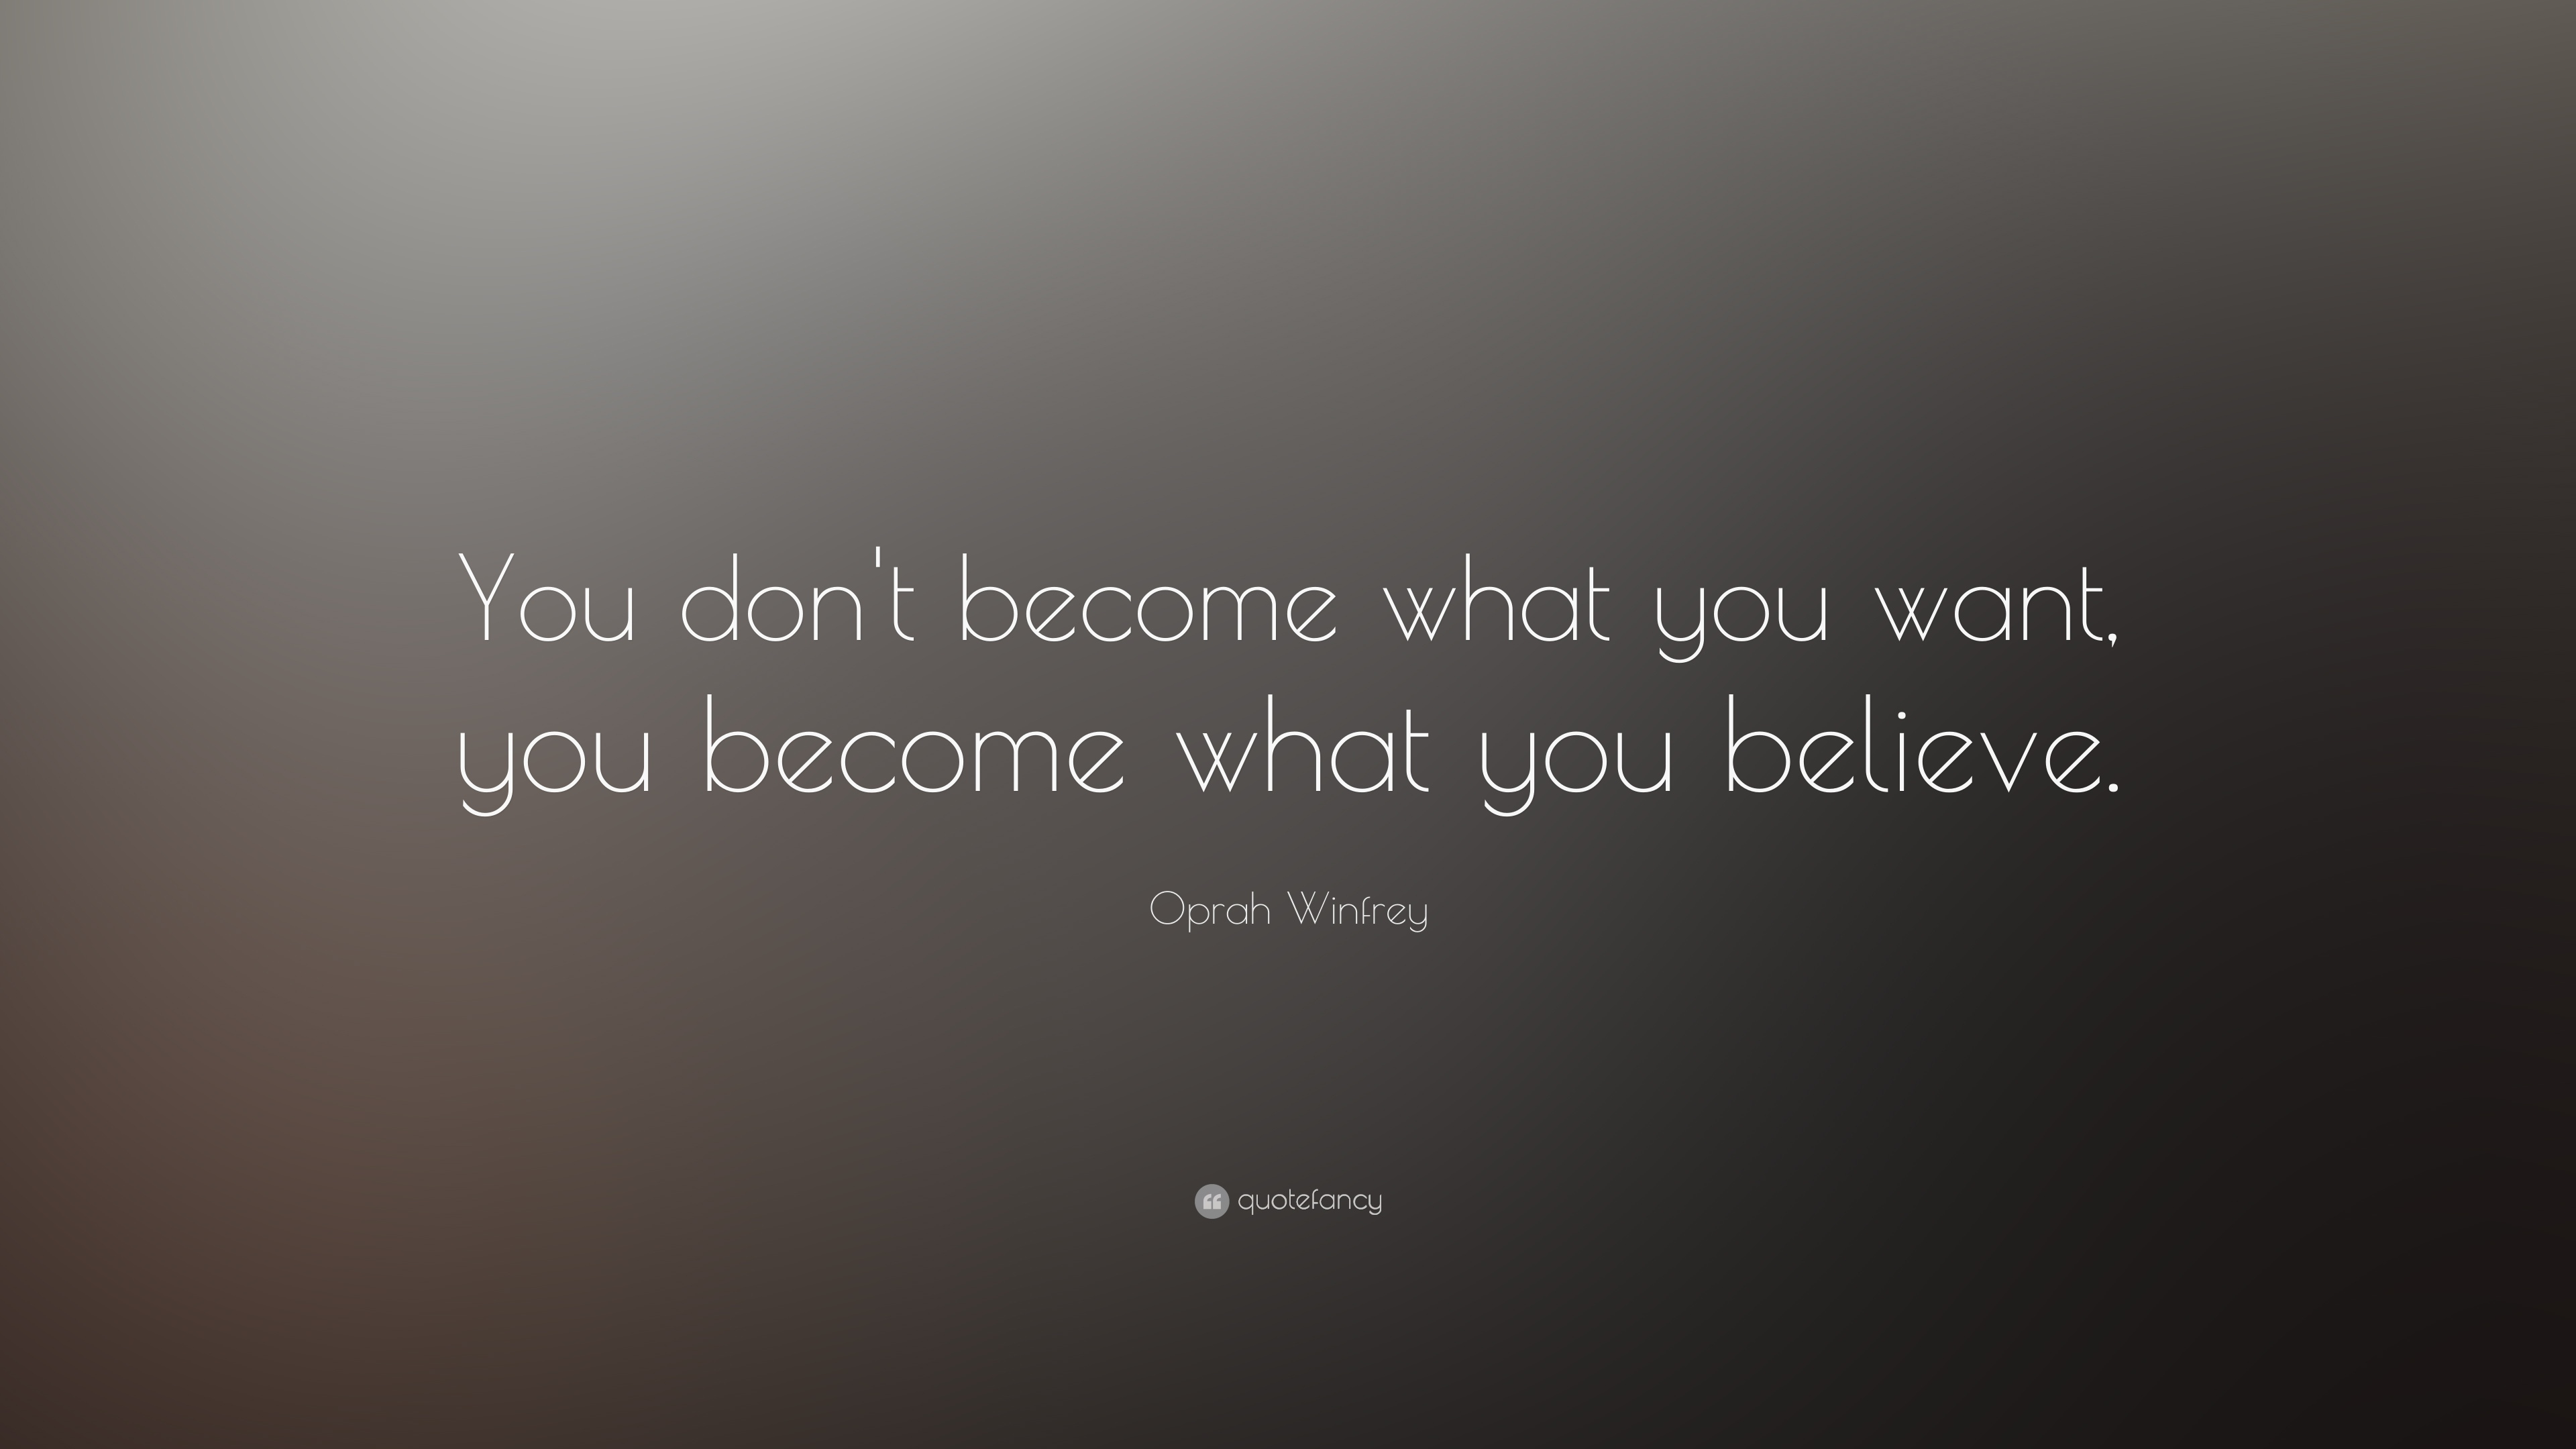 Nice Wallpapers With Inspiring Quotes Oprah Winfrey Quote You Don T Become What You Want You